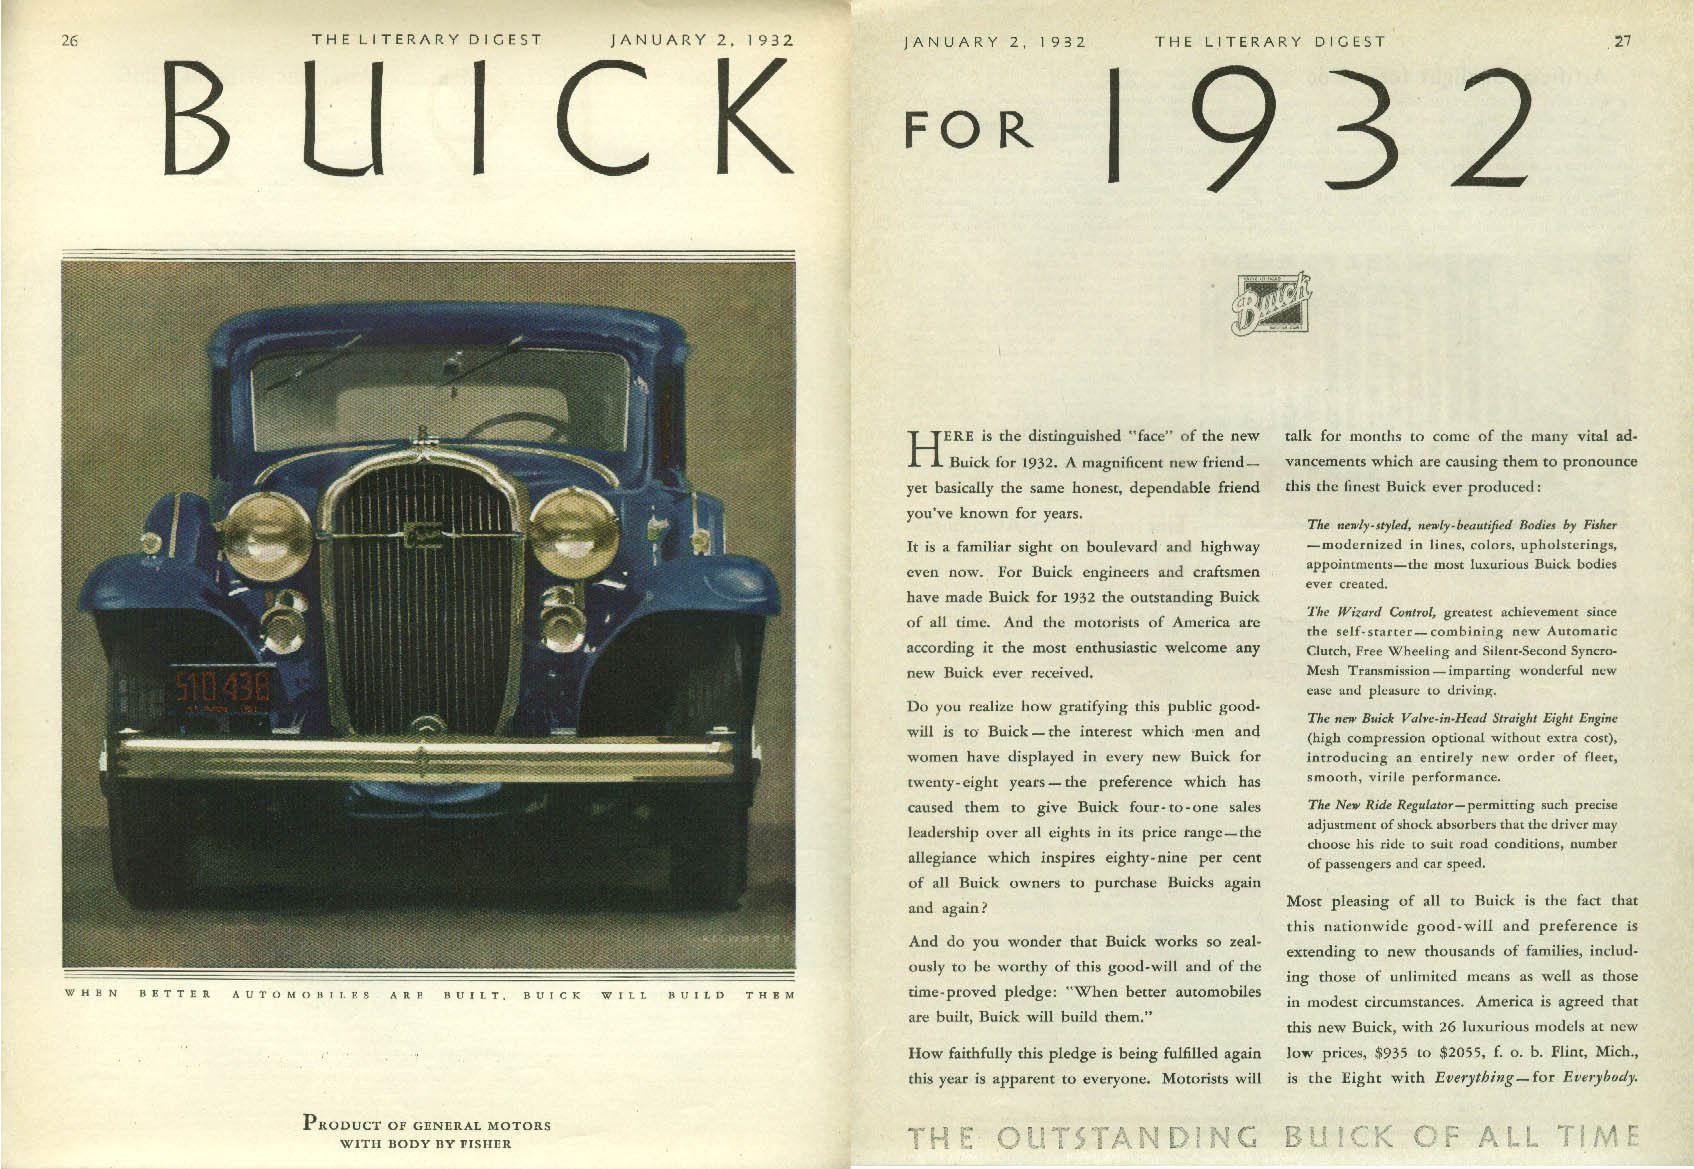 The distinguished face of the new Buick for 1932 ad LD